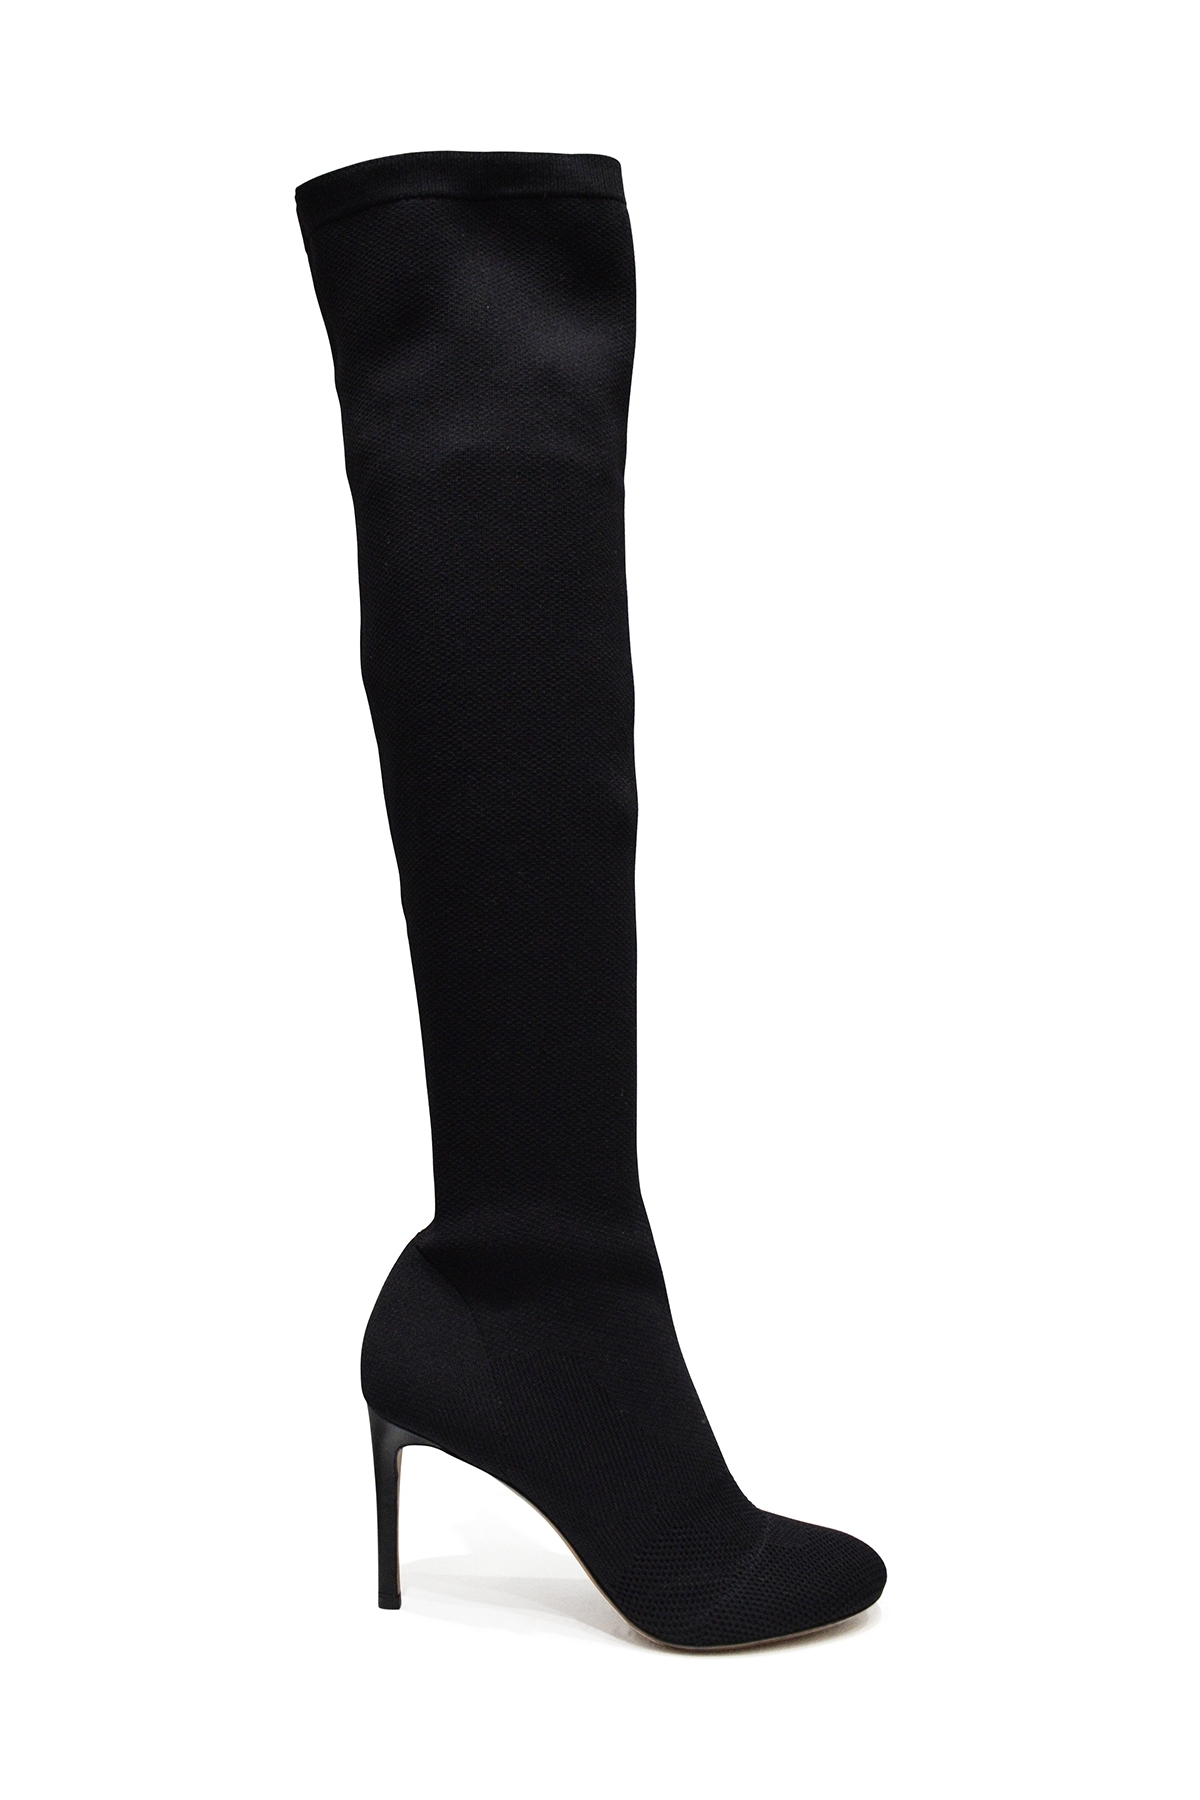 Bodytech over-the-knee boots